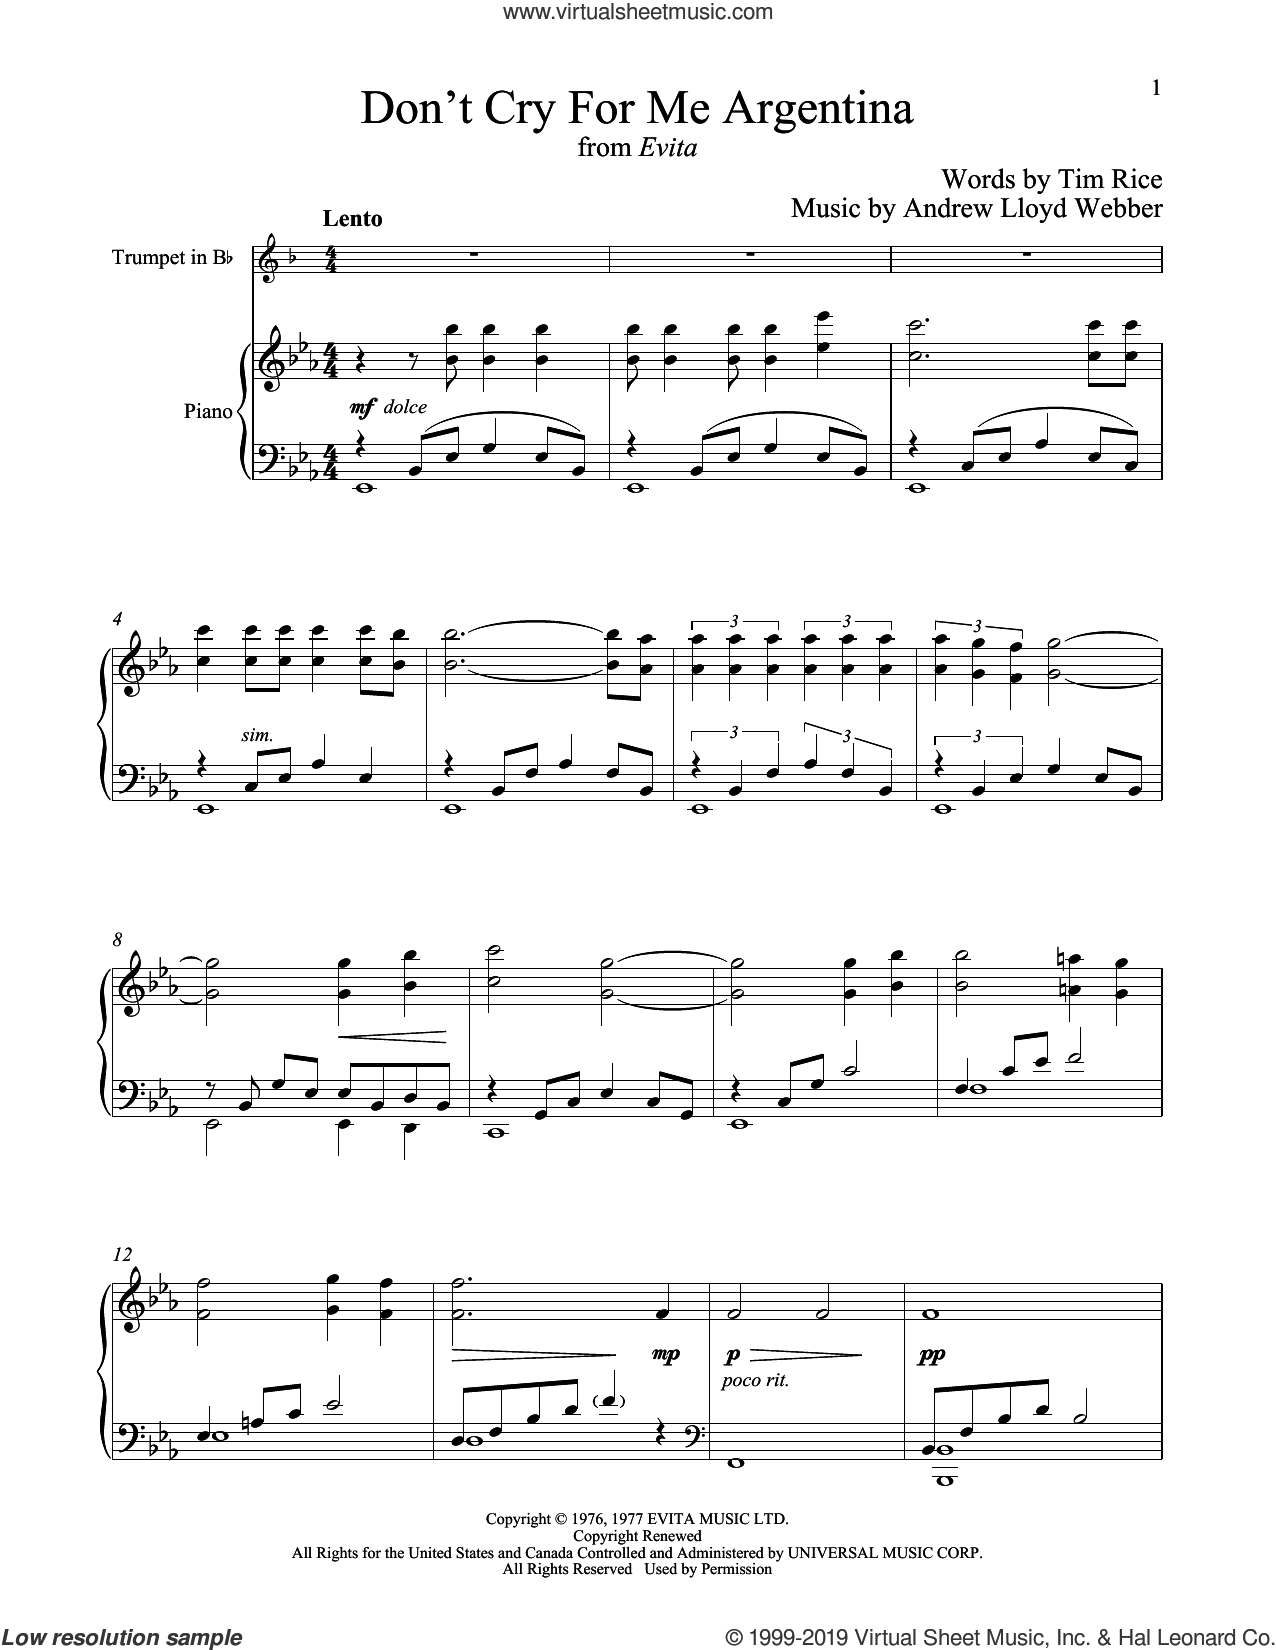 Don't Cry For Me Argentina (from Evita) sheet music for trumpet and piano by Andrew Lloyd Webber, Madonna and Tim Rice, intermediate skill level